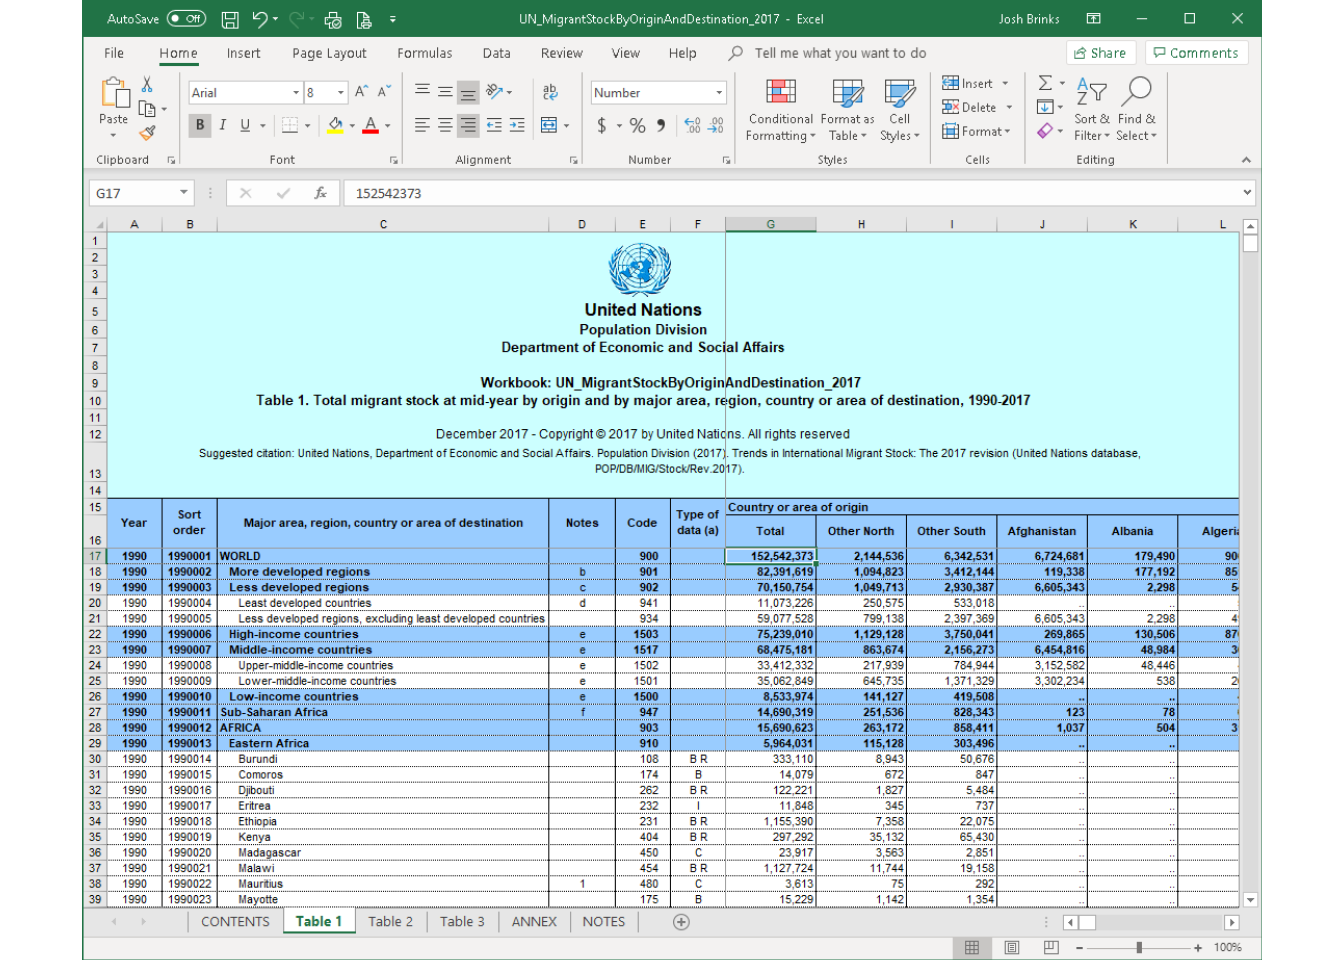 Screen shot containing UN Migrant Stock data. Large headers, offset matrices, multiple aggregations, multiple tabs, etc.